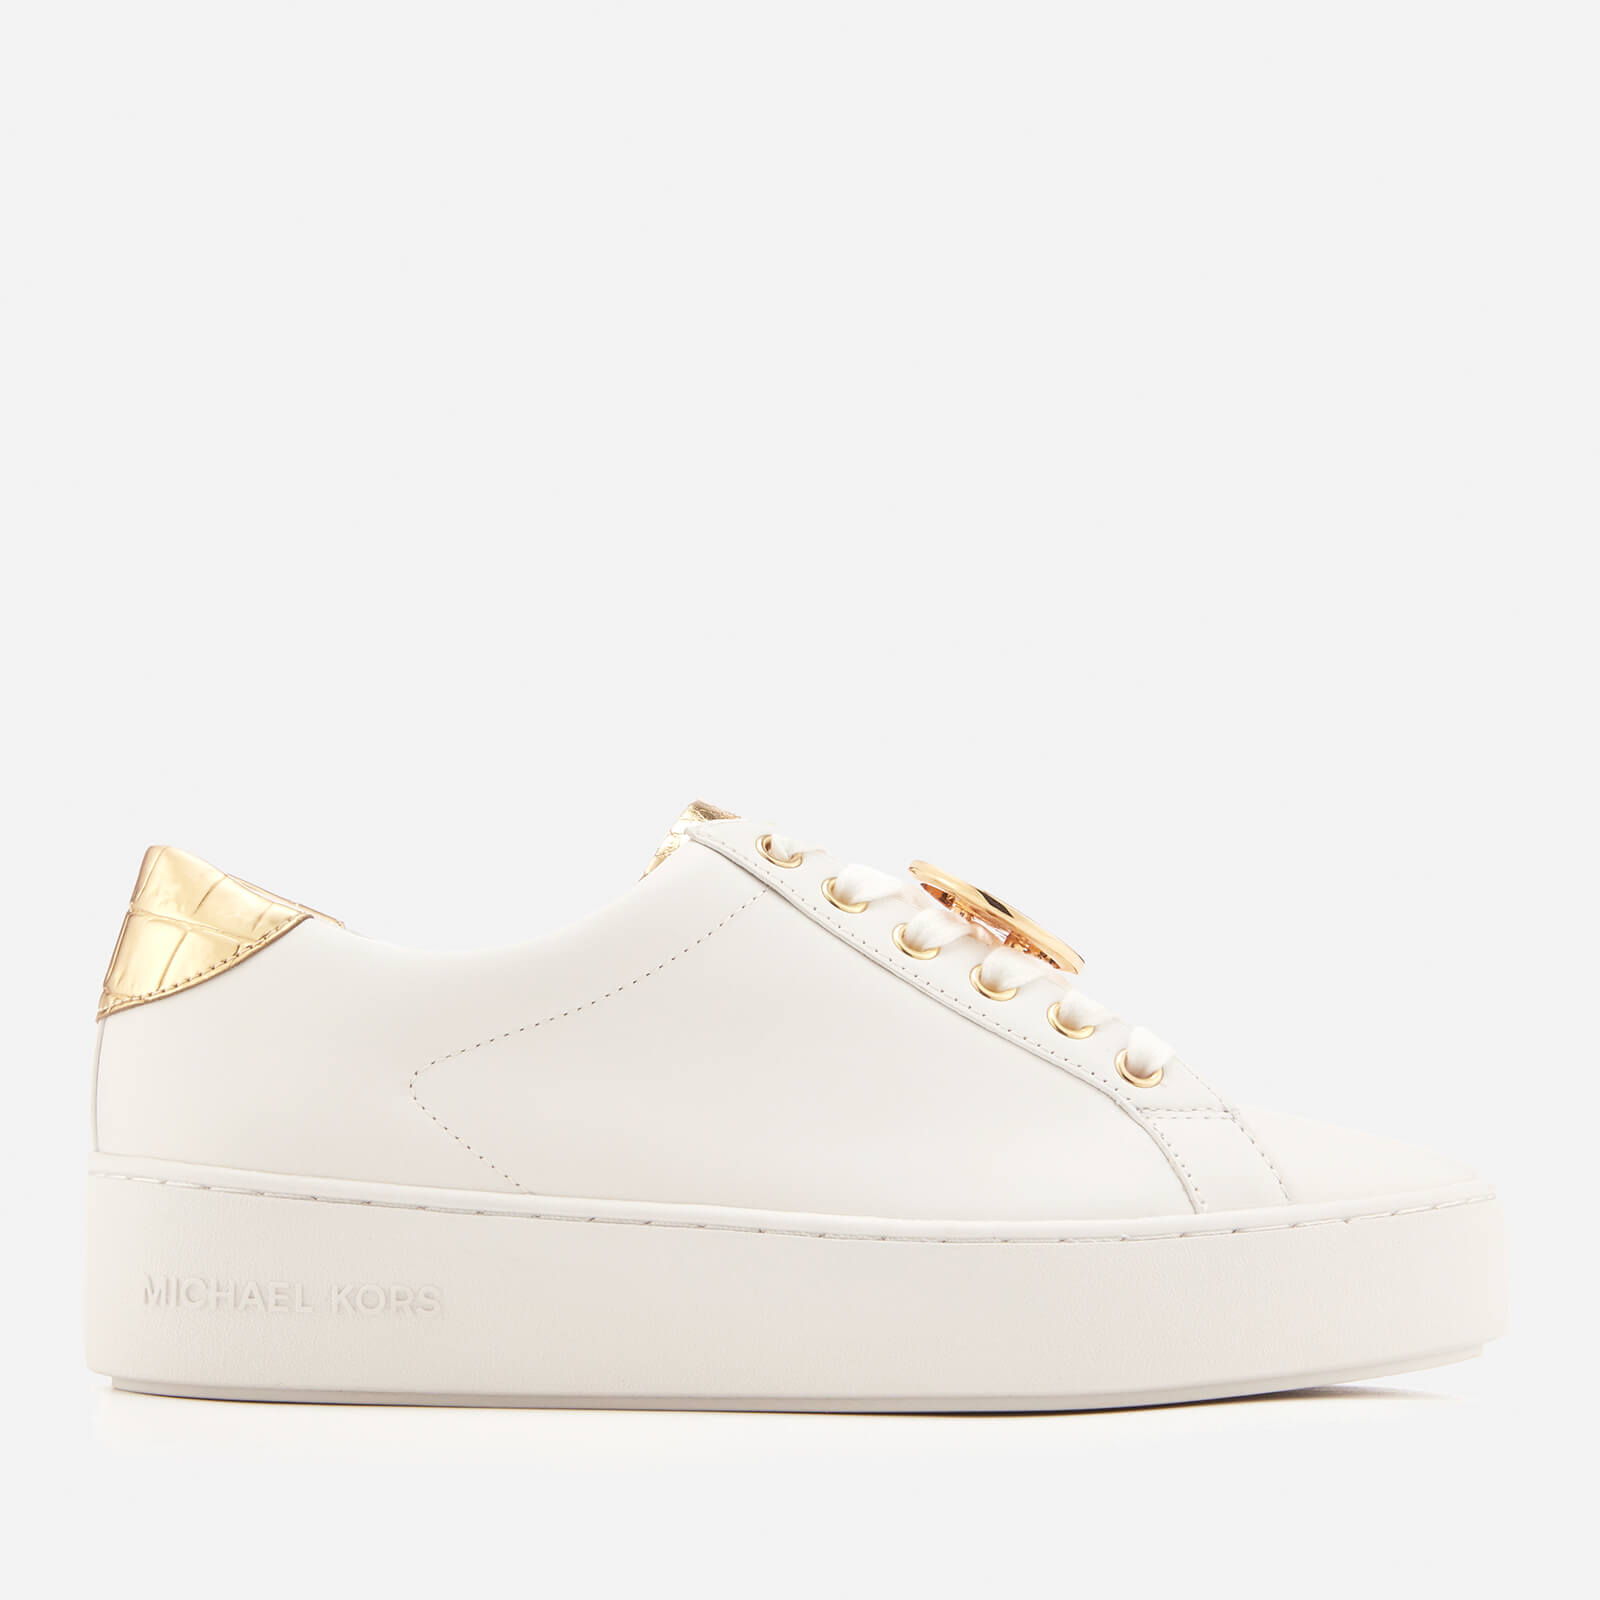 8b4009ae3a0 MICHAEL MICHAEL KORS Women s Poppy Lace Up Trainers - Optic White Womens  Footwear